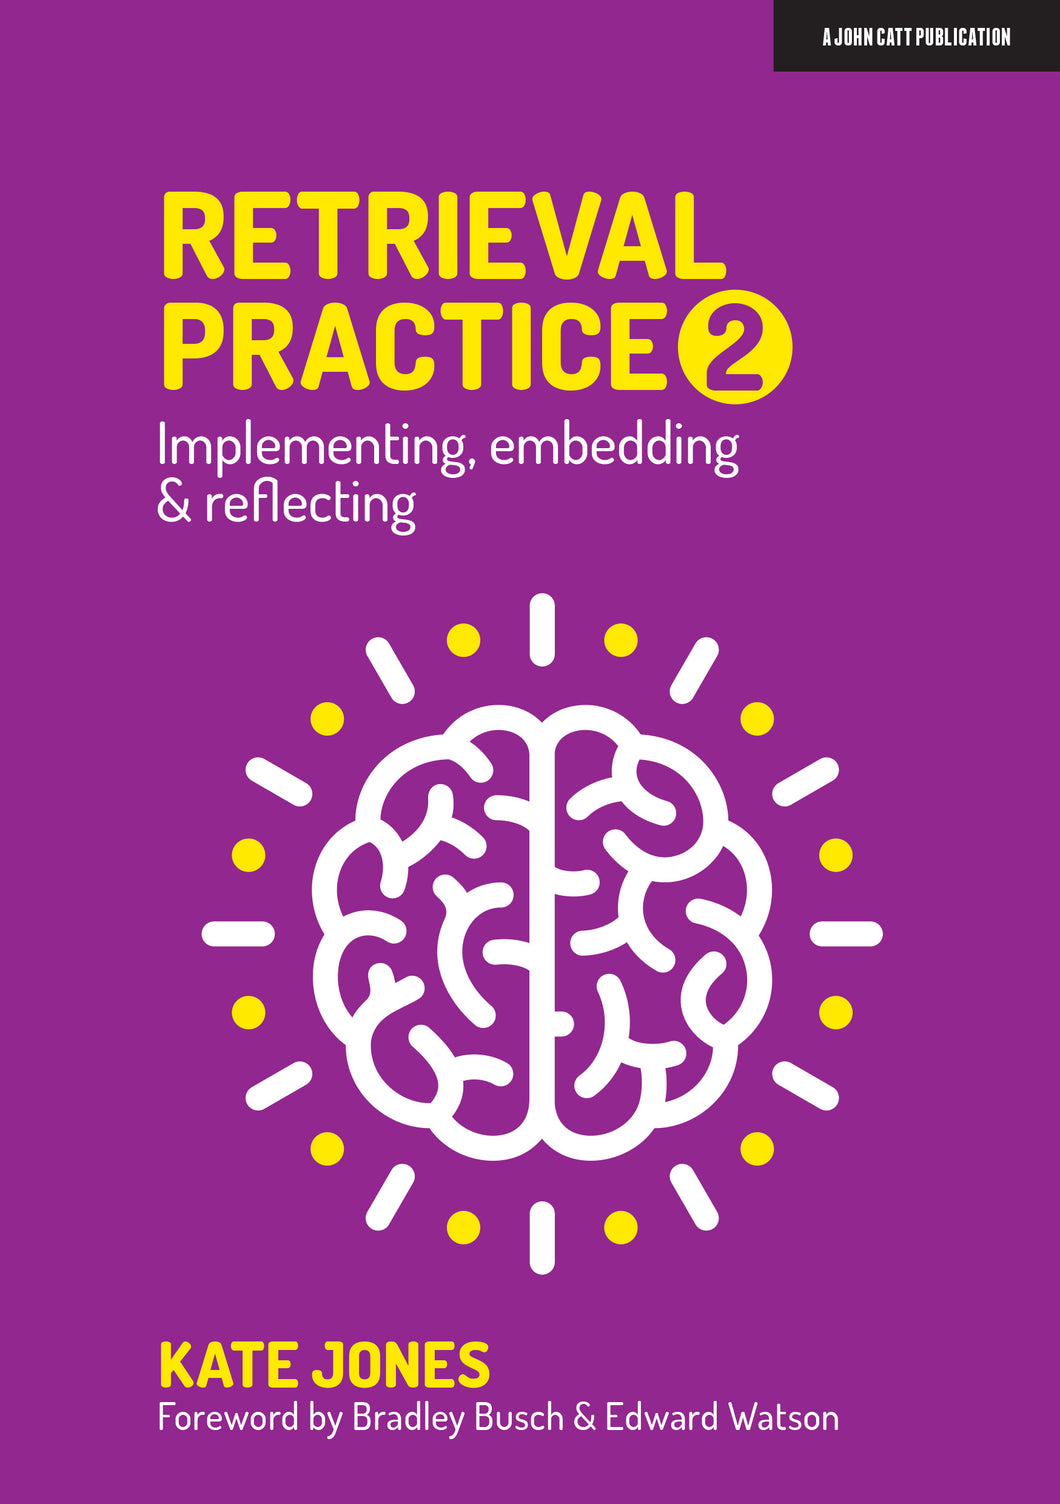 Retrieval Practice 2: Implementing, embedding & reflecting